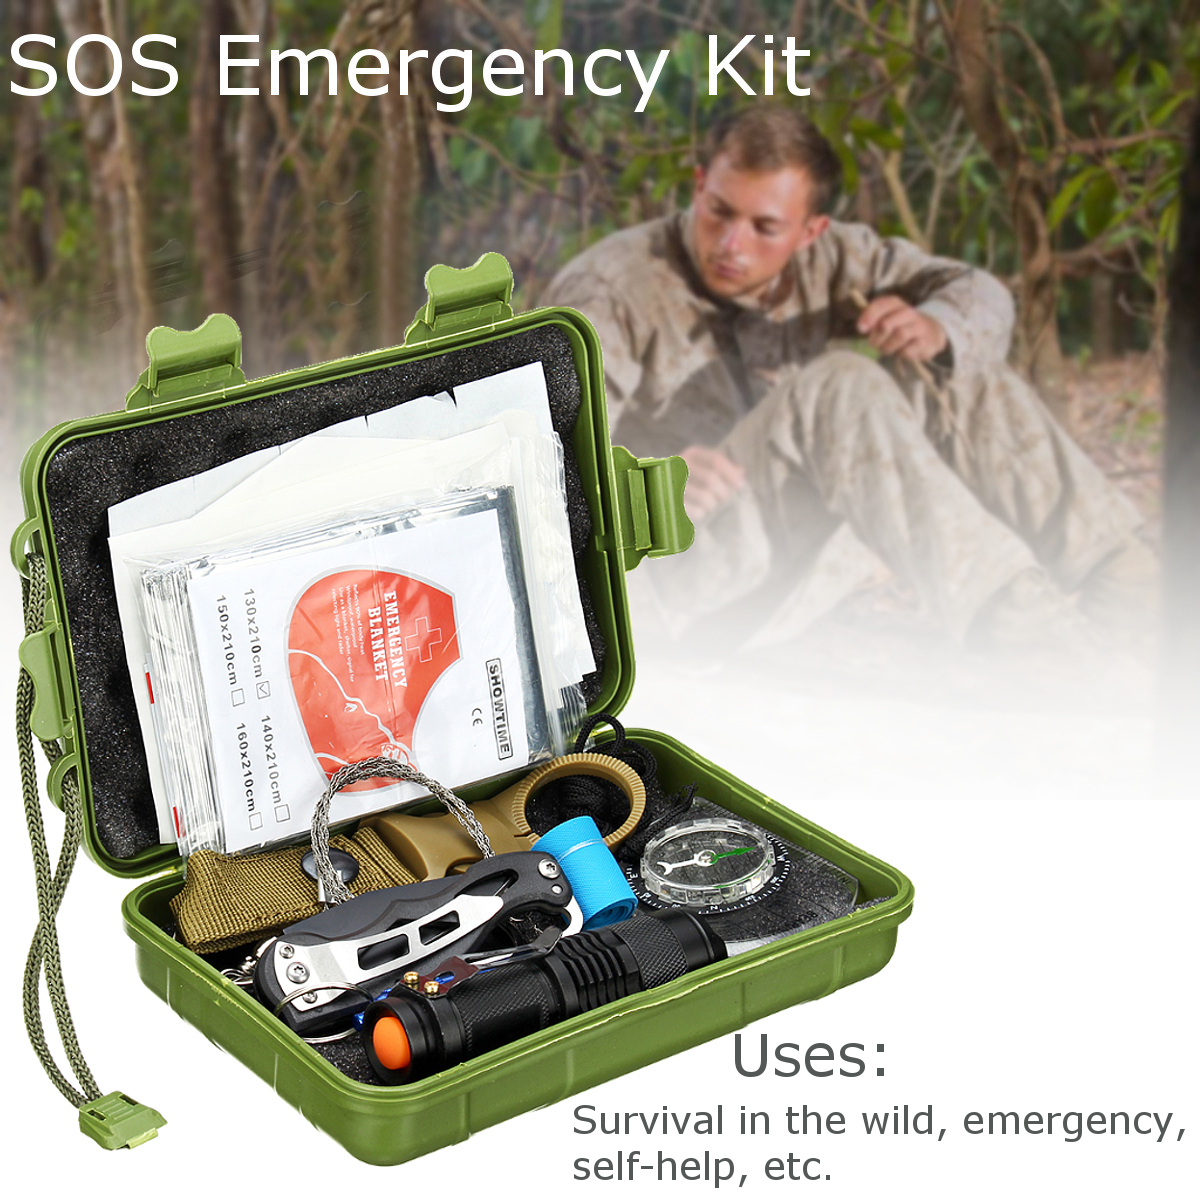 195Pcs Upgraded Emergency Survival Tools Kit Multi-Tools for Camping Hiking Hunting First Aid Supplies Survival Gear SOS